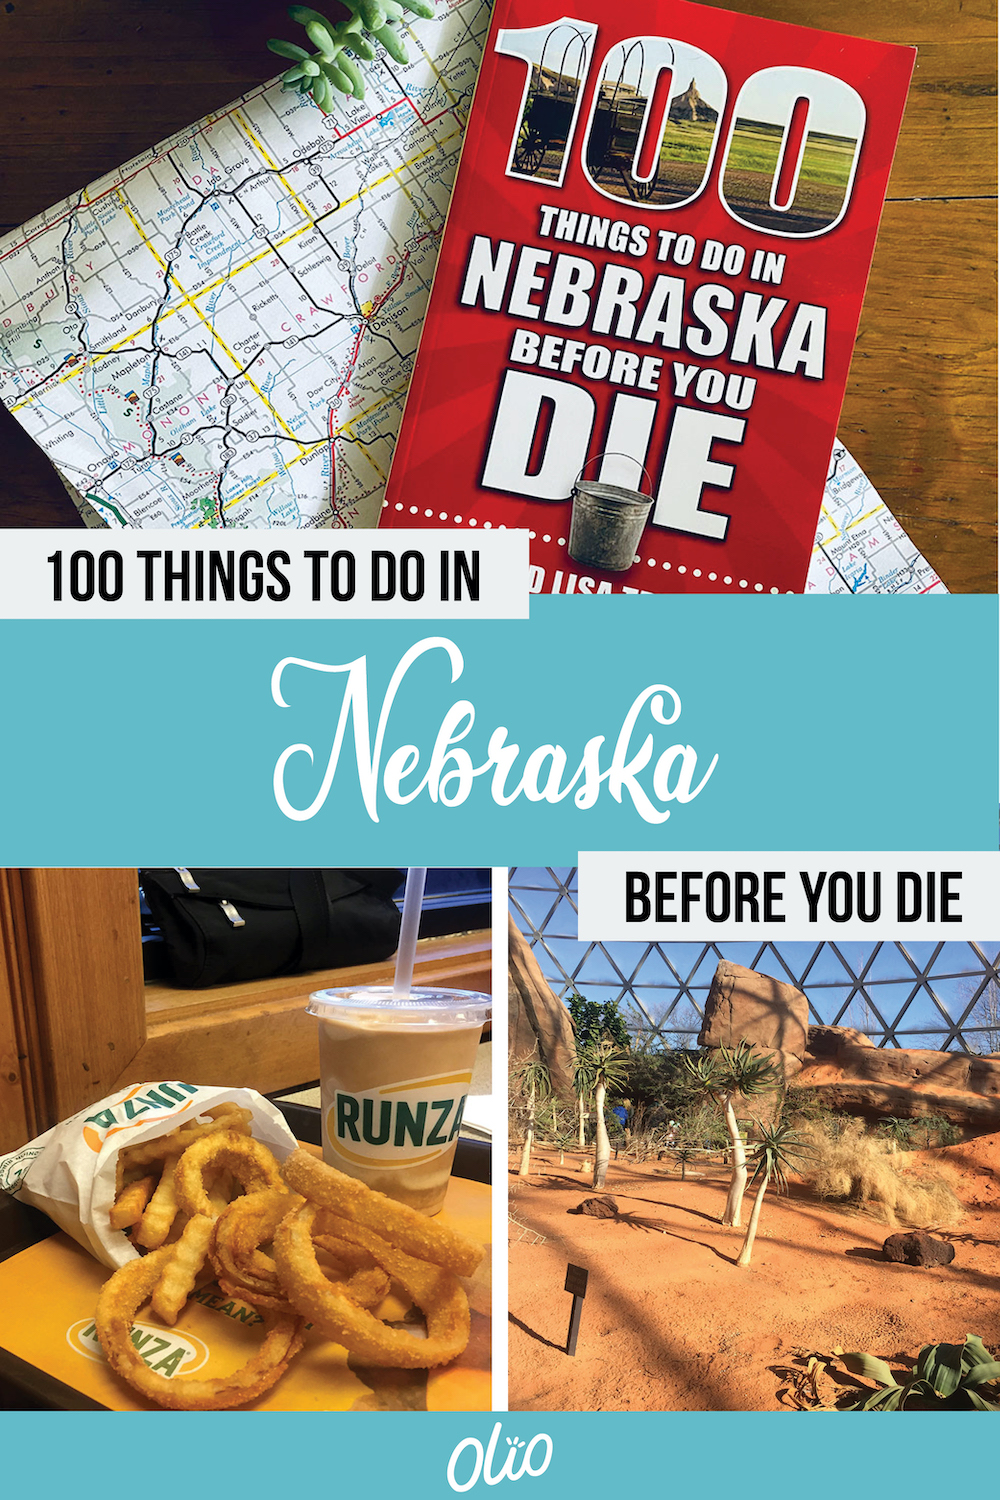 Have you visited Nebraska? Authors Tim and Lisa Trudell compile the 100 Things to Do in Nebraska Before You Die in this book, which includes food, local history, roadside oddities and more. Start planning your Nebraska road trip (including a stop at Runza) today! #Nebraska